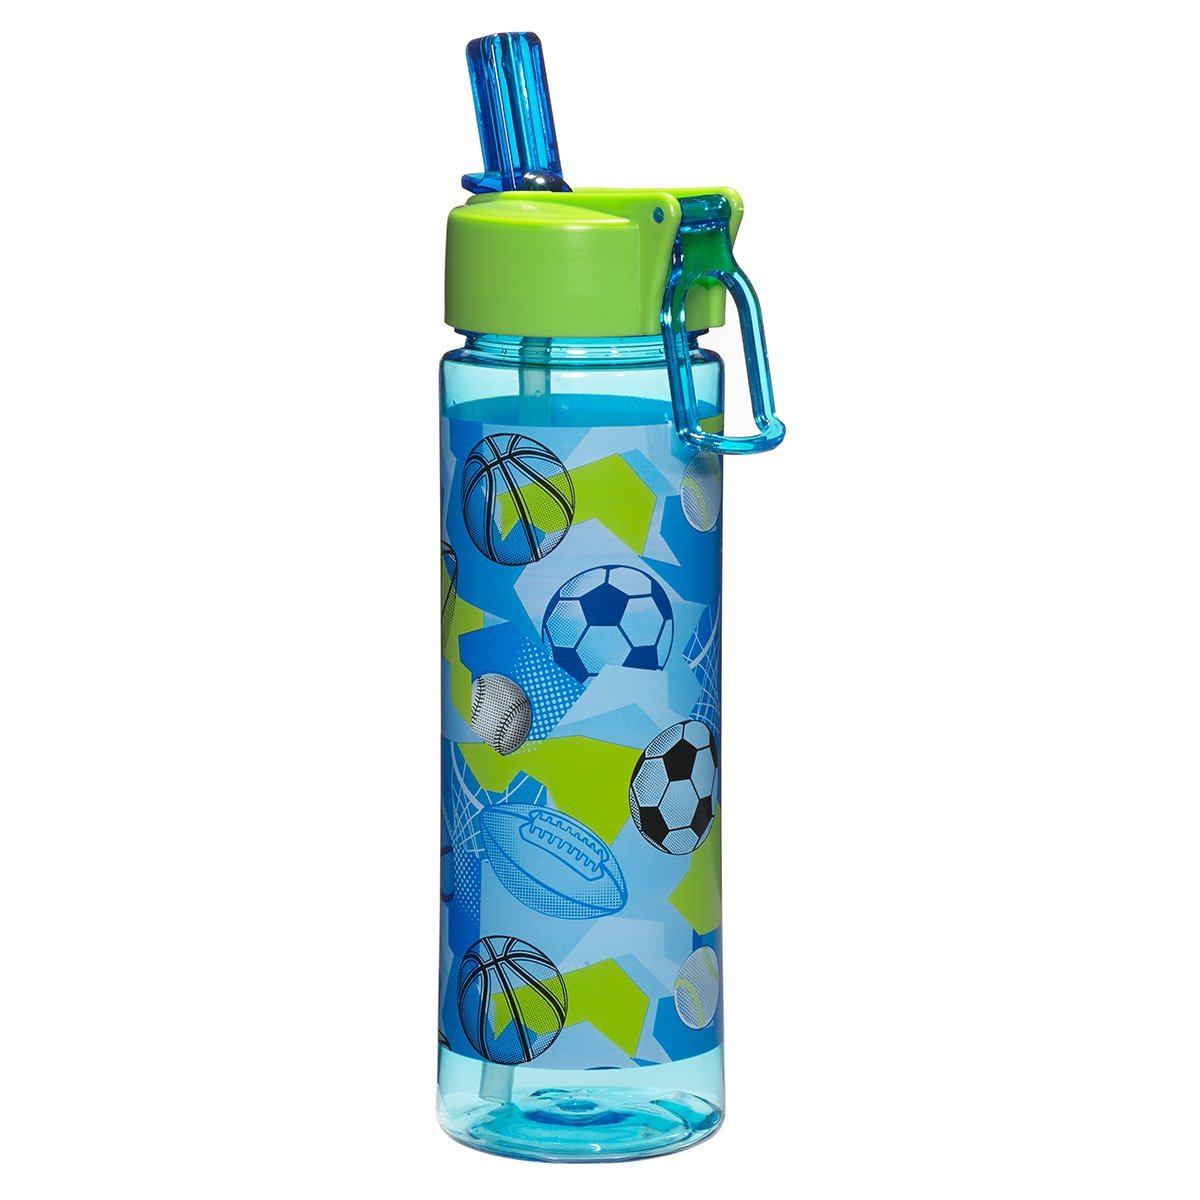 Image of 3dRose Ask me about Nutrition - advertise your Nutritionist work - job advert - self-promotion advertising, Sports Water Bottle, 21oz